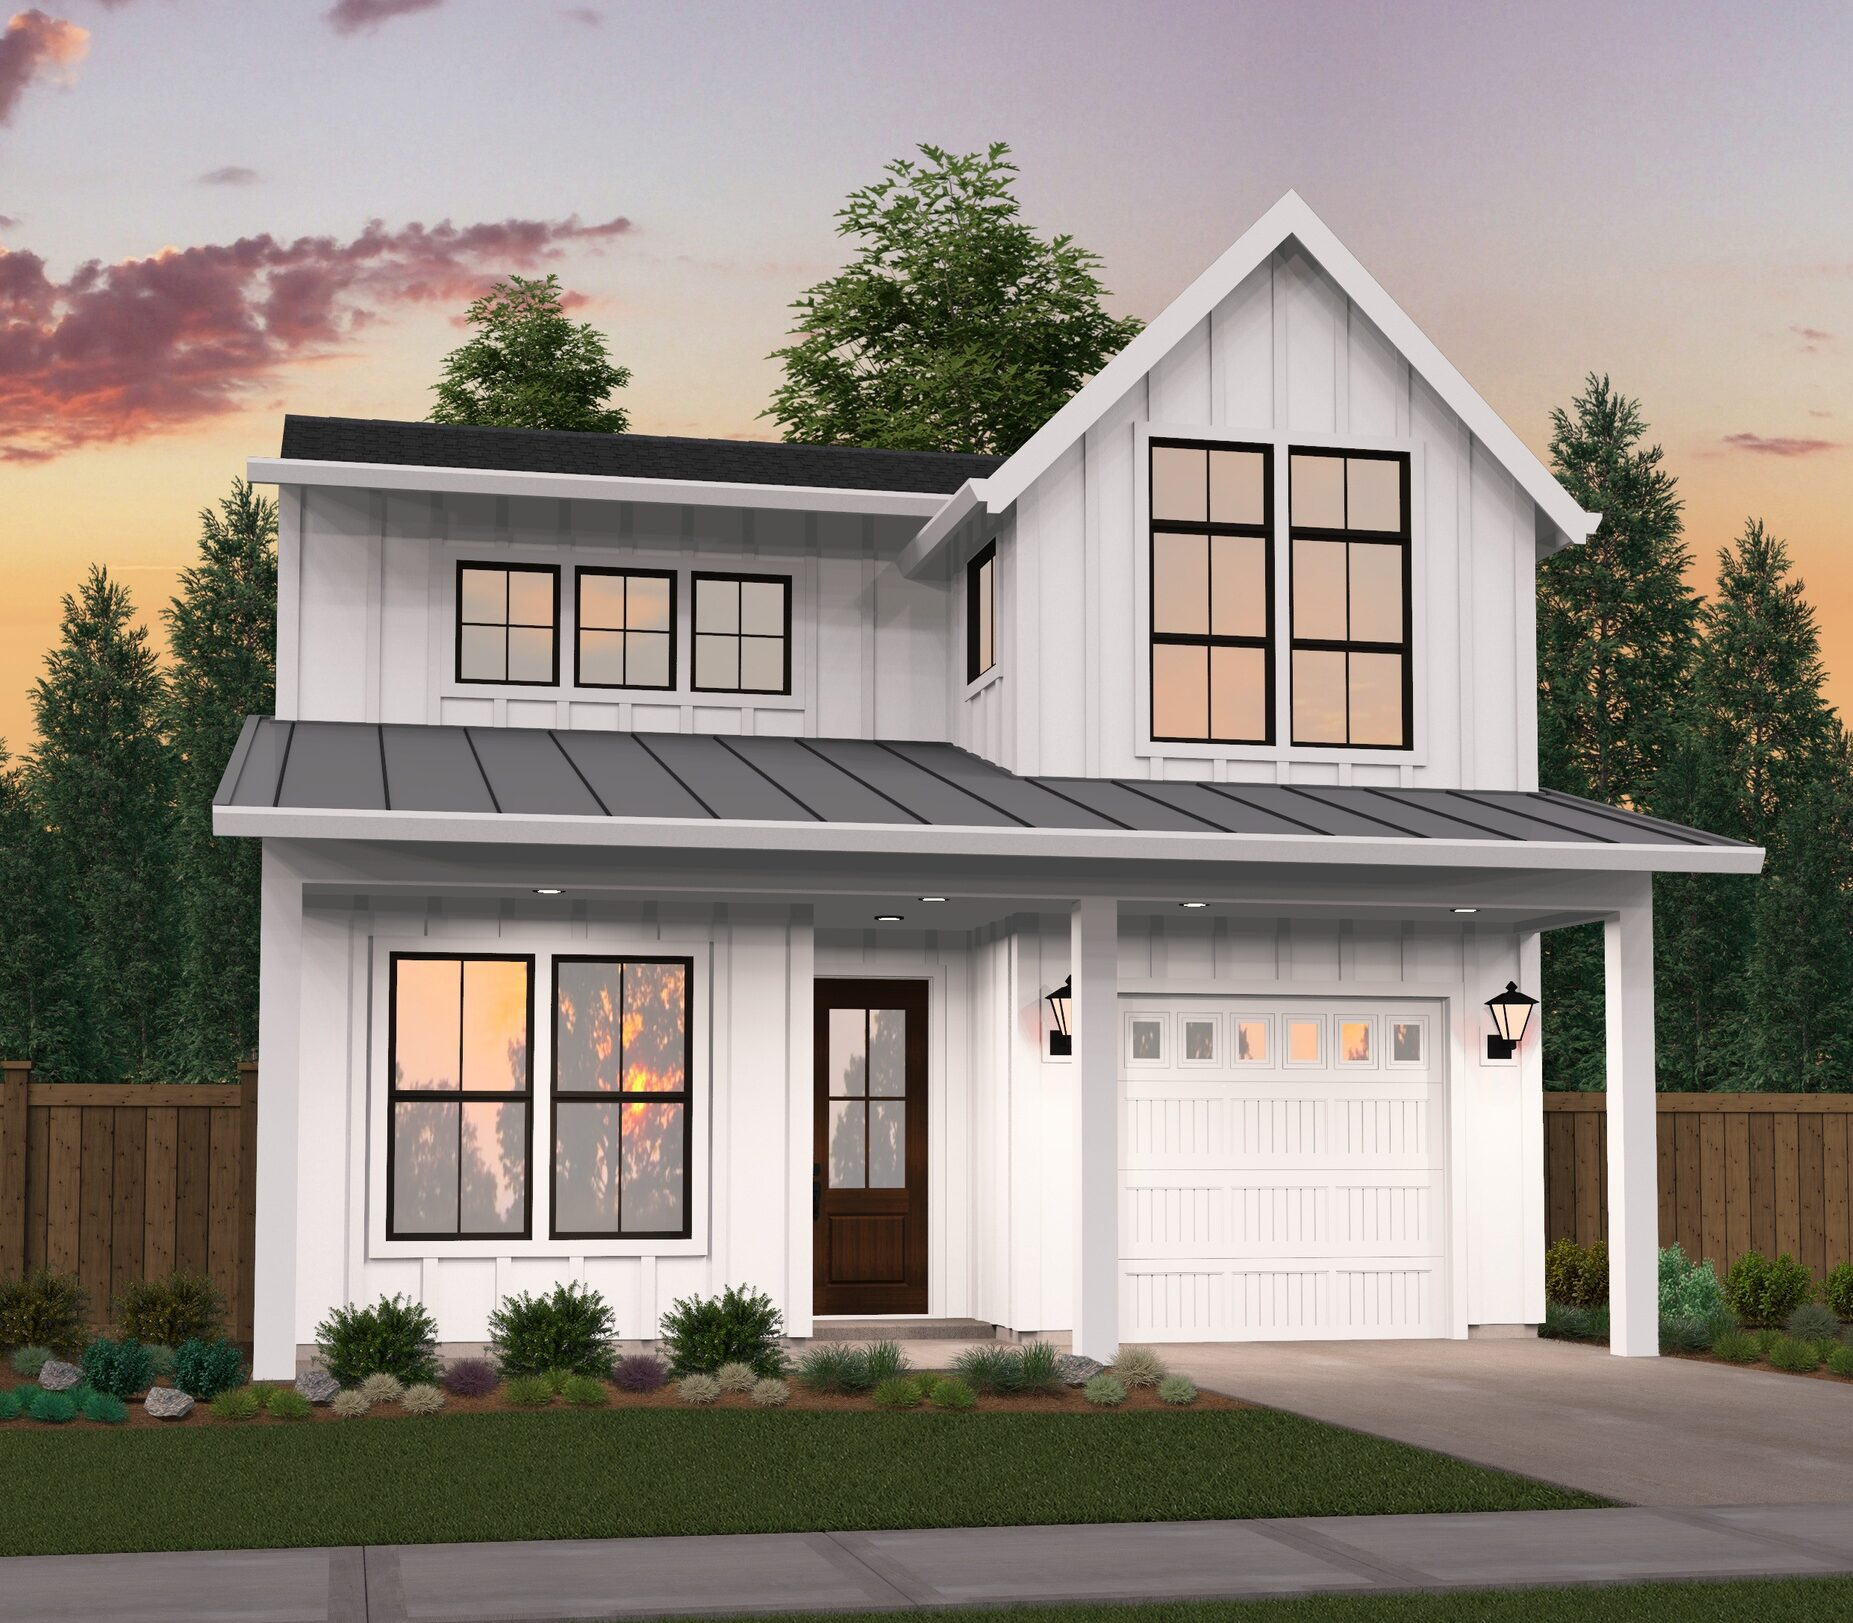 Dancer House Plan | Two Story Modern Farmhouse Plans with ...